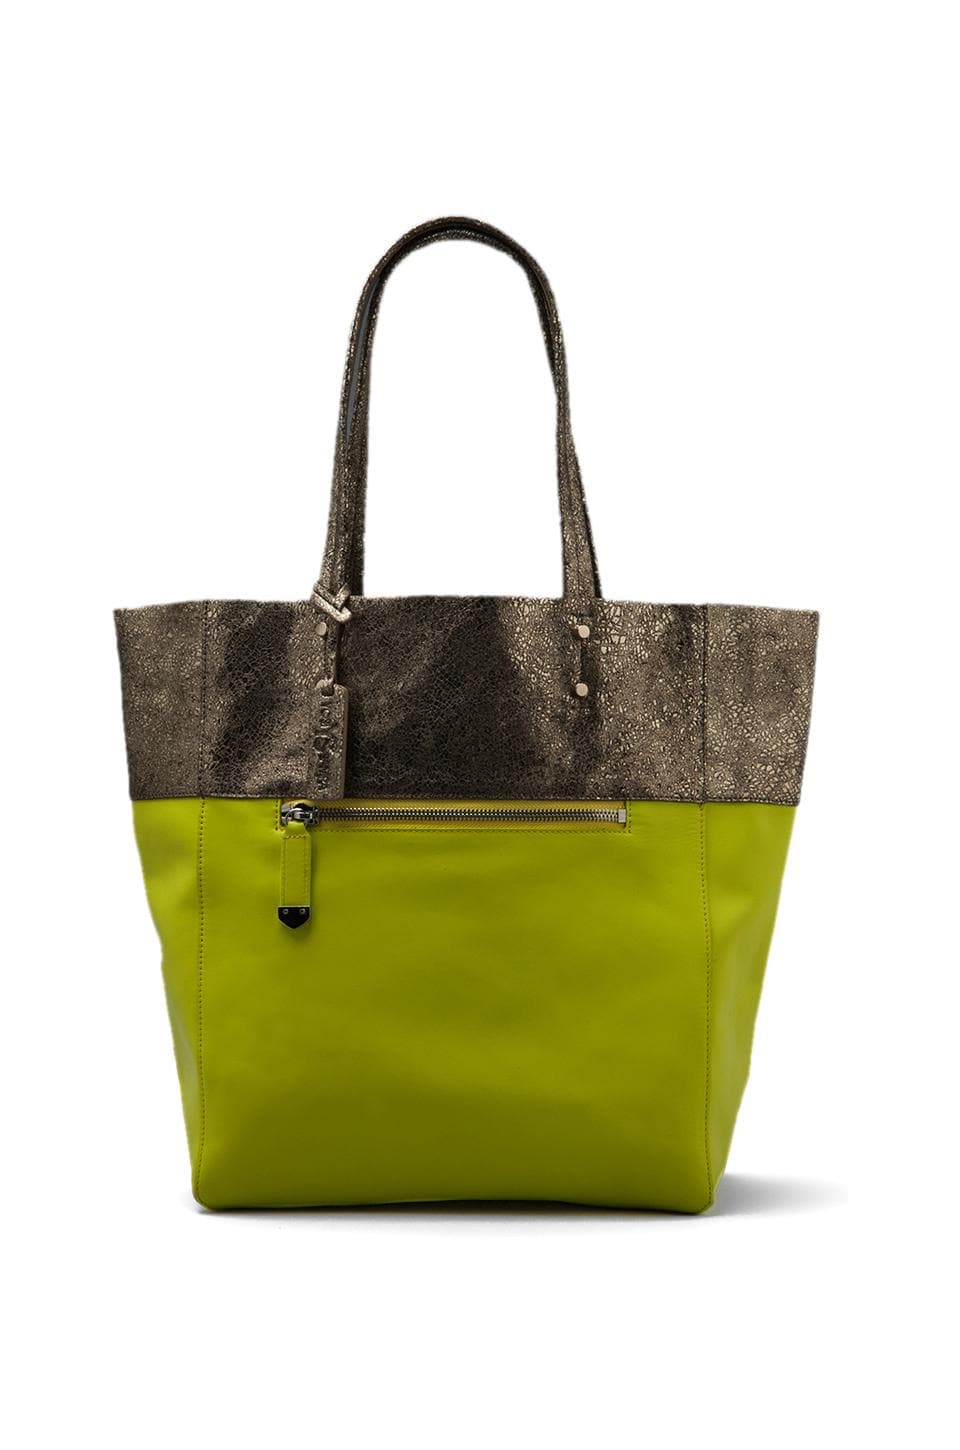 Yosi Samra Burnished Leather Bag in Gold/Citron